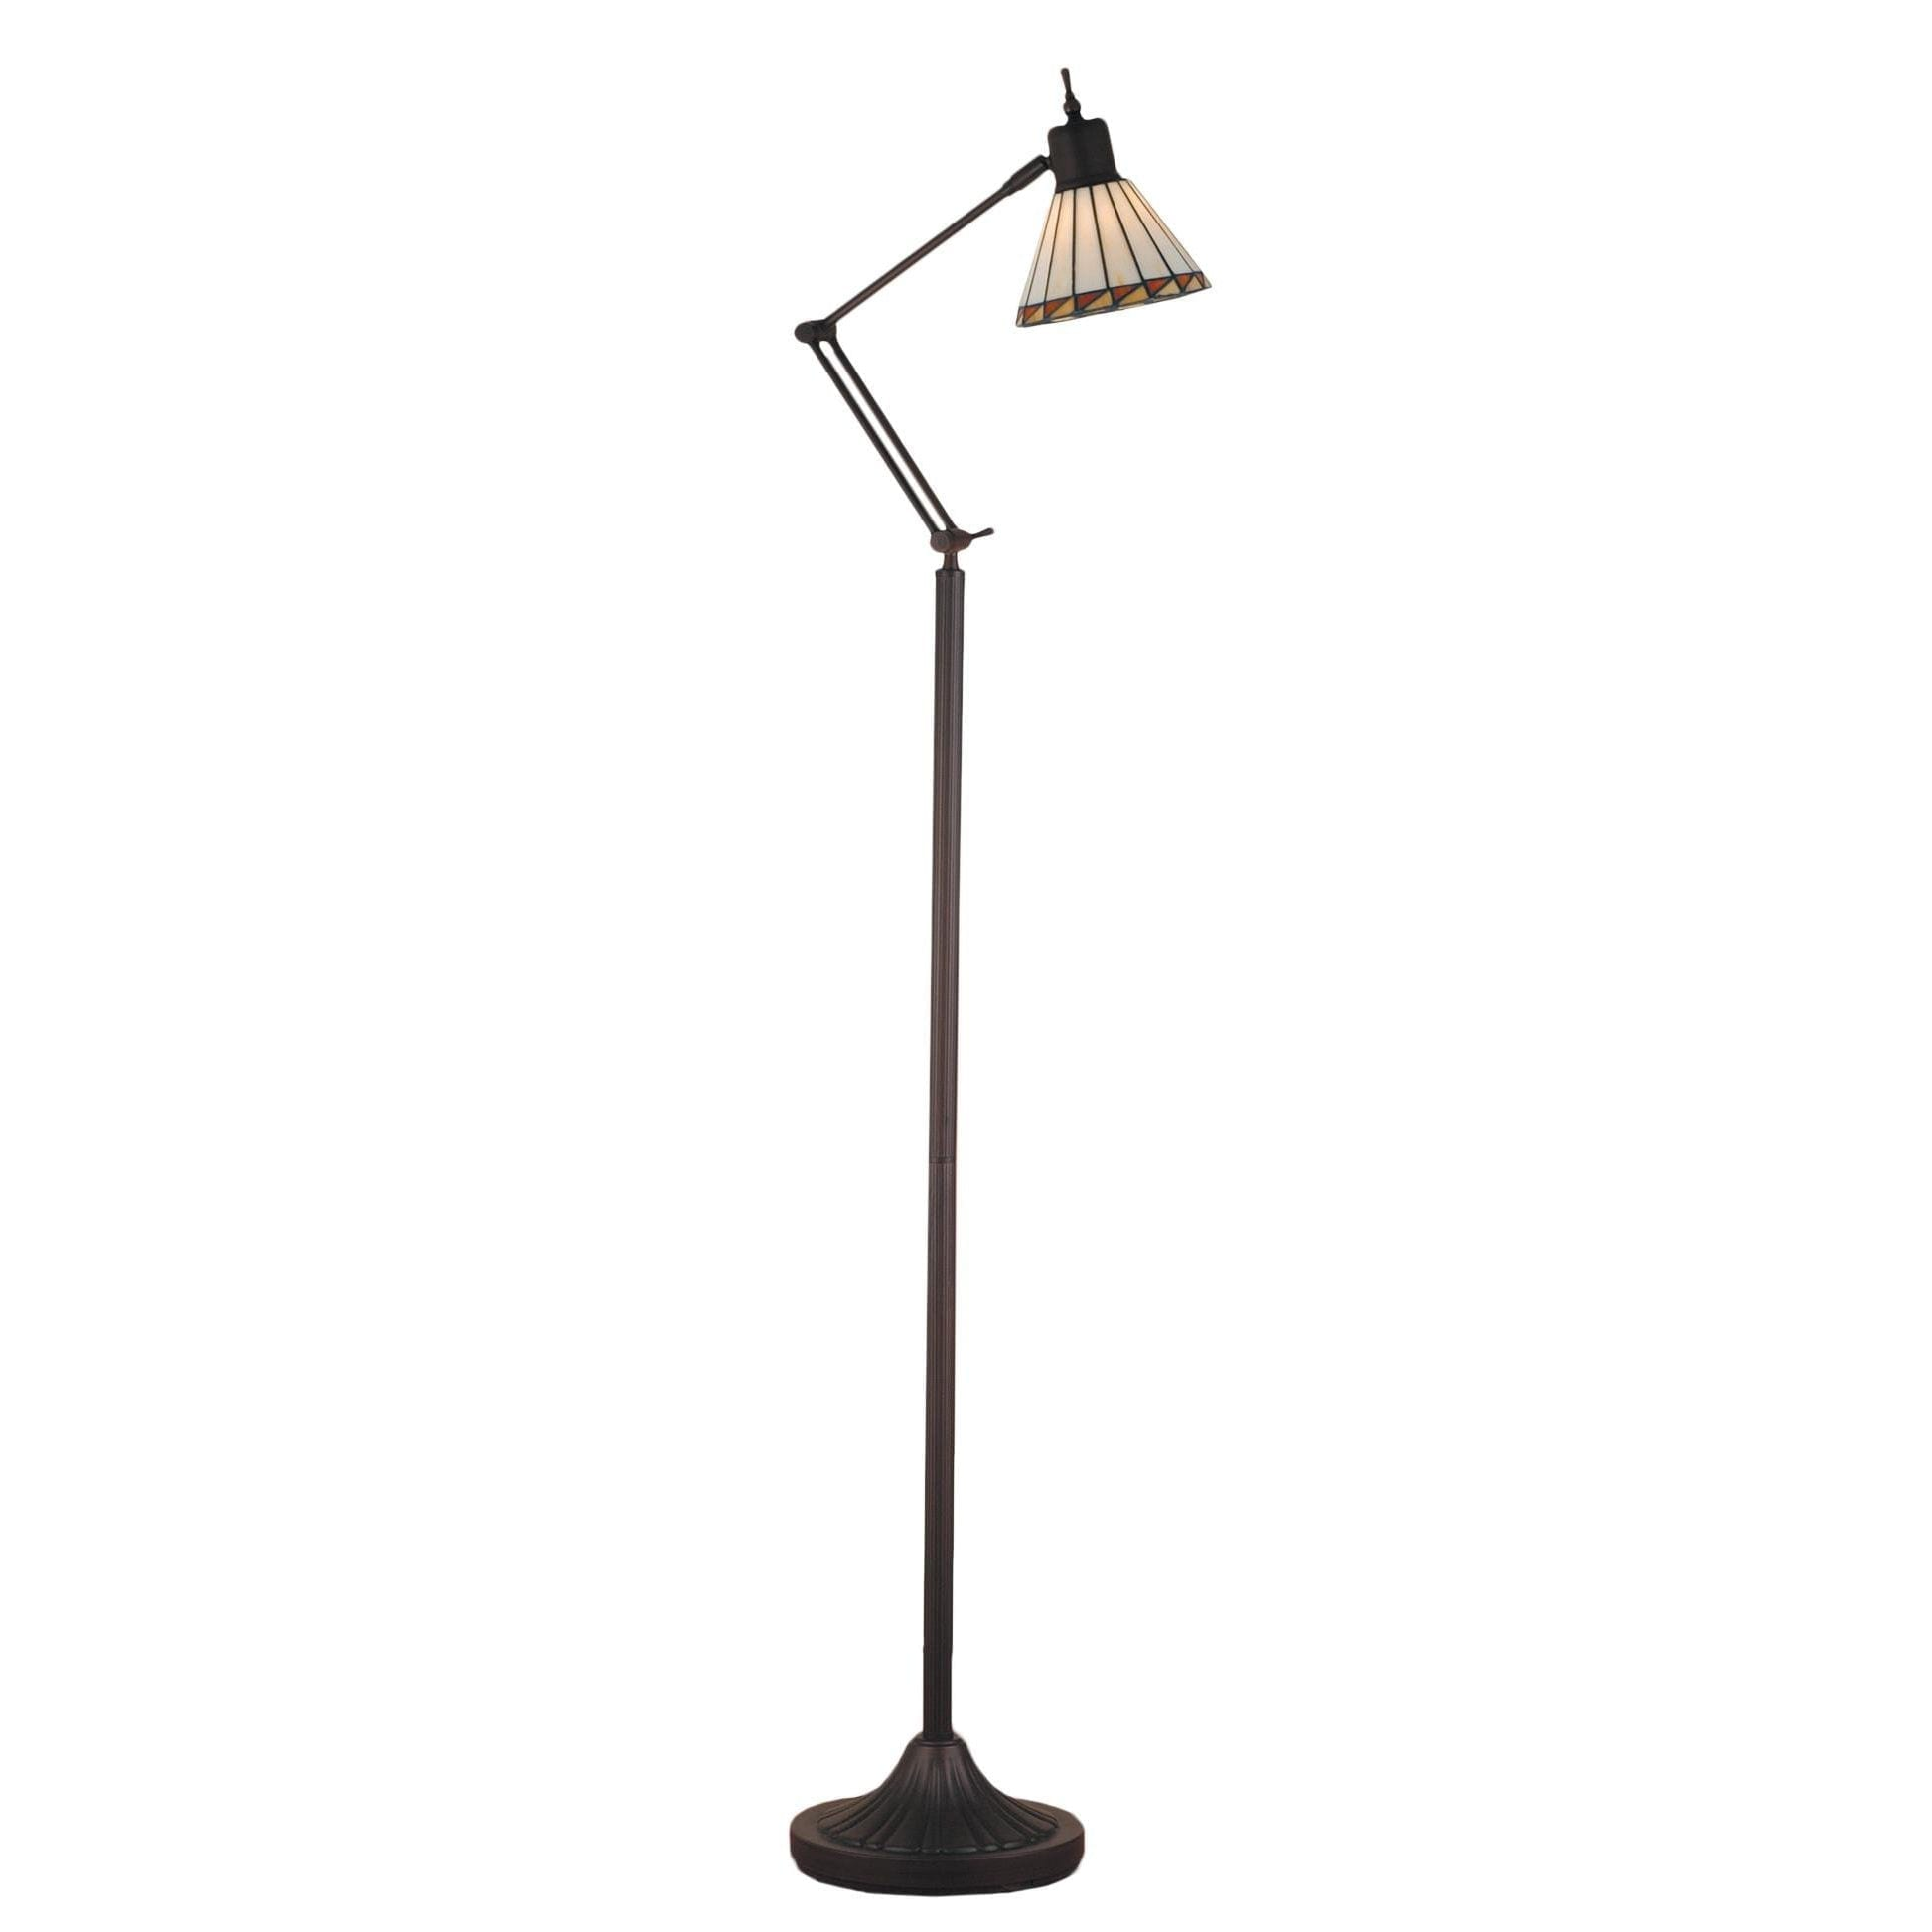 Adjustable Floor Reading Lamp Stained Glass Tiffany Mission Style Light